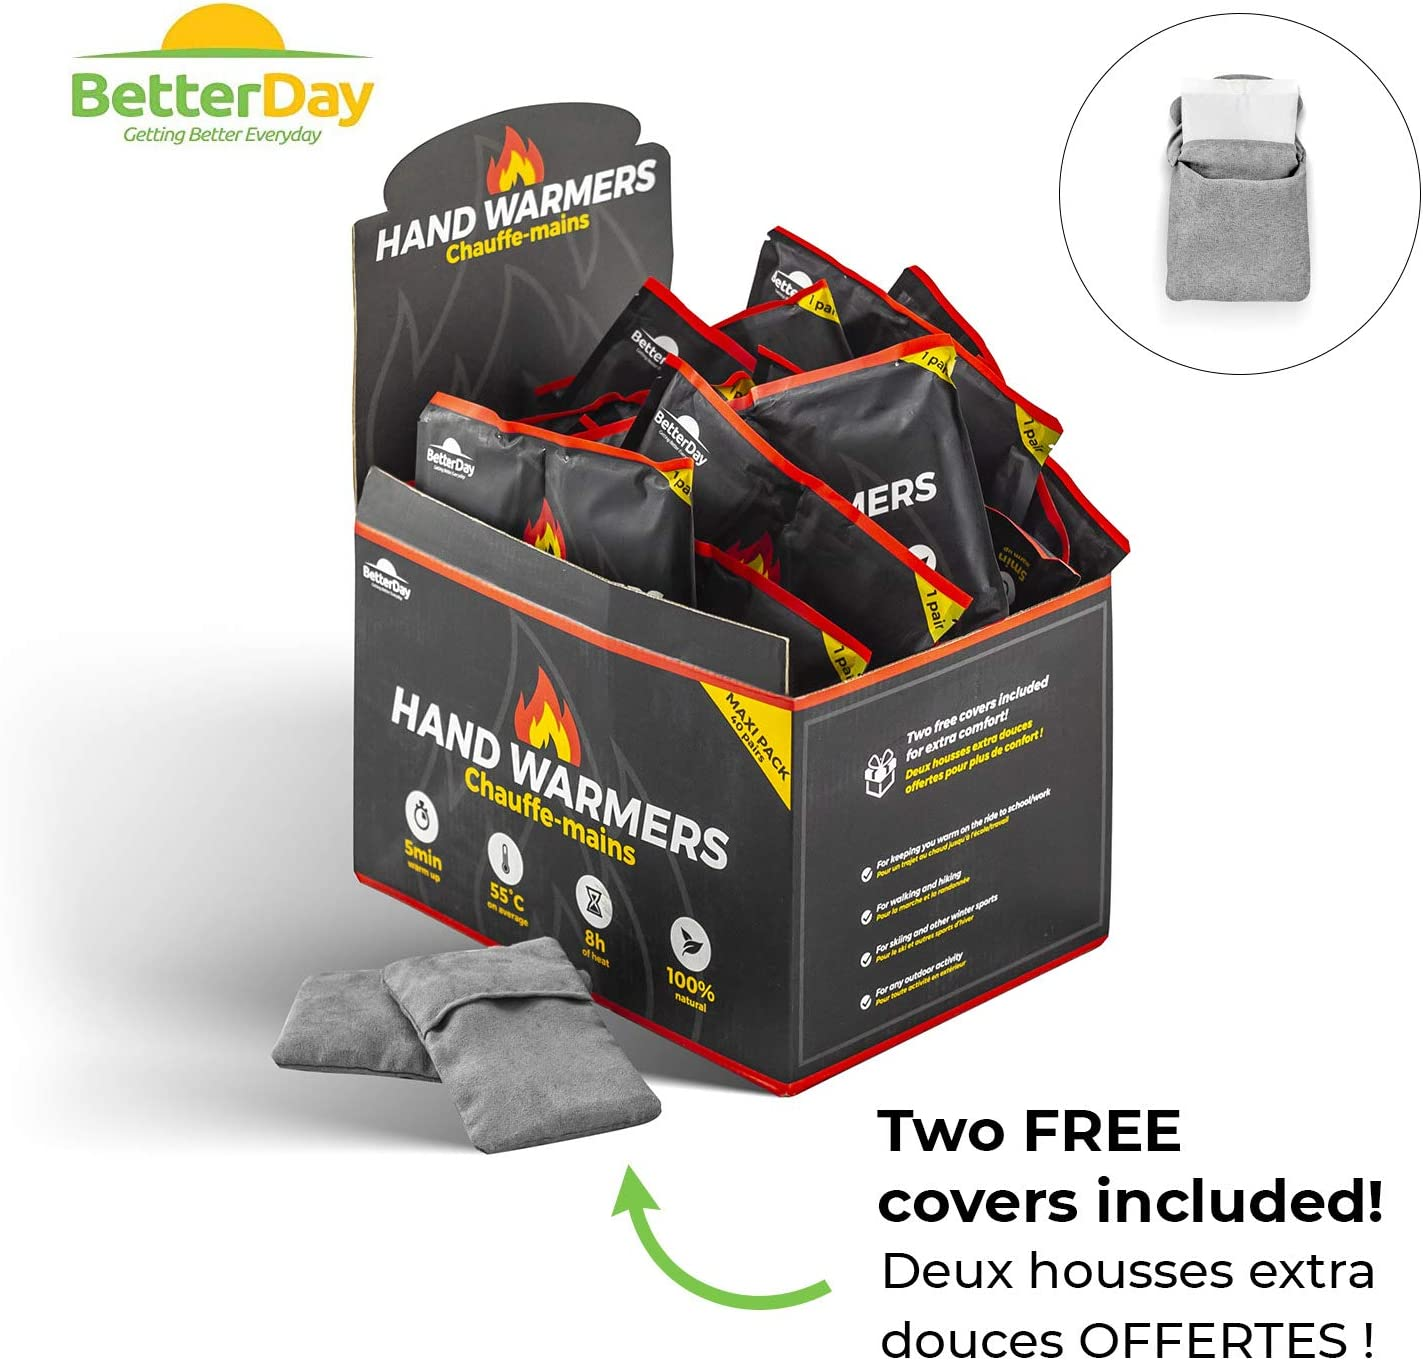 80 Pocket Warmers Hand Warmer Value Pack BetterDay/® Premium Hand Warmers with Covers 100/% Natural 40 pairs Air Activated Warmers up to 62/°C lasts up to 10 hours